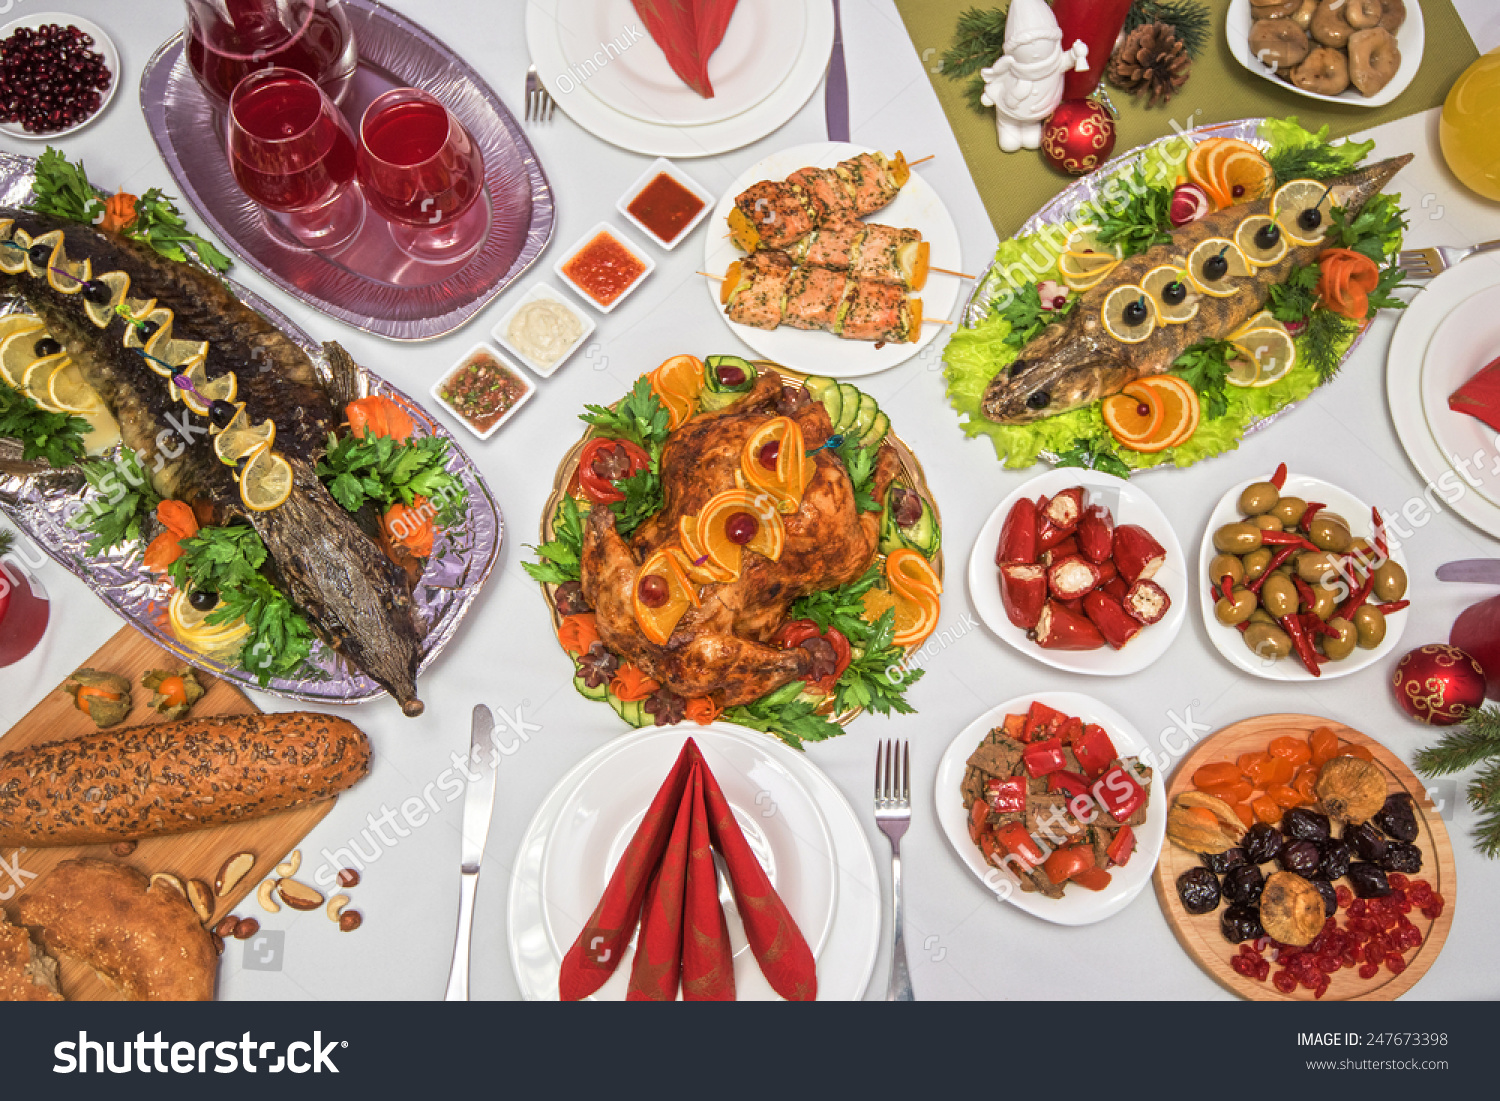 A lot of food on a table